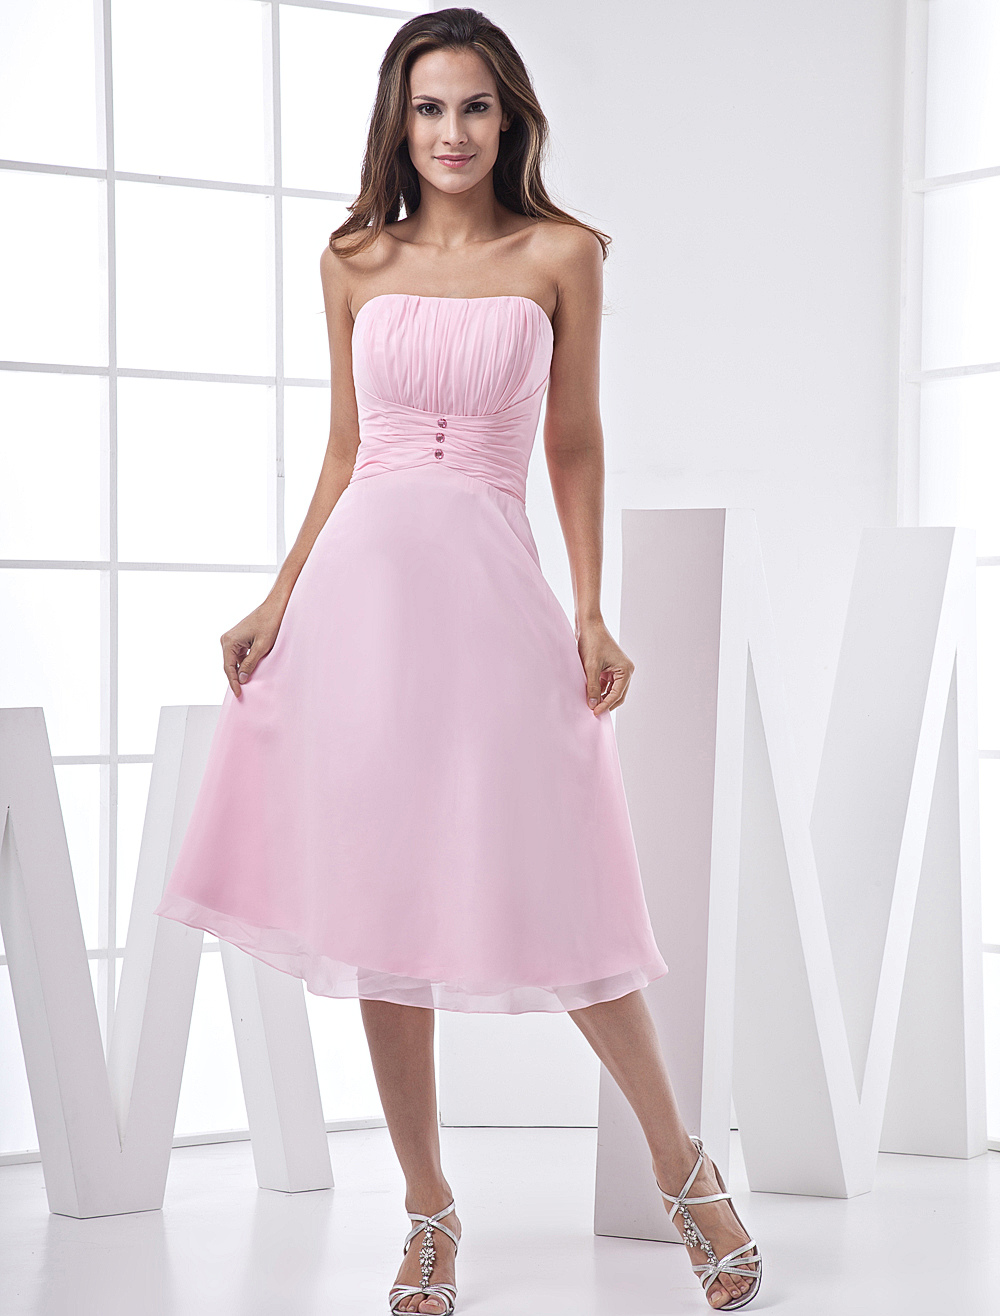 Pink Lovely A-line Strapless Chiffon Satin Prom Gown/Homecoming Dress